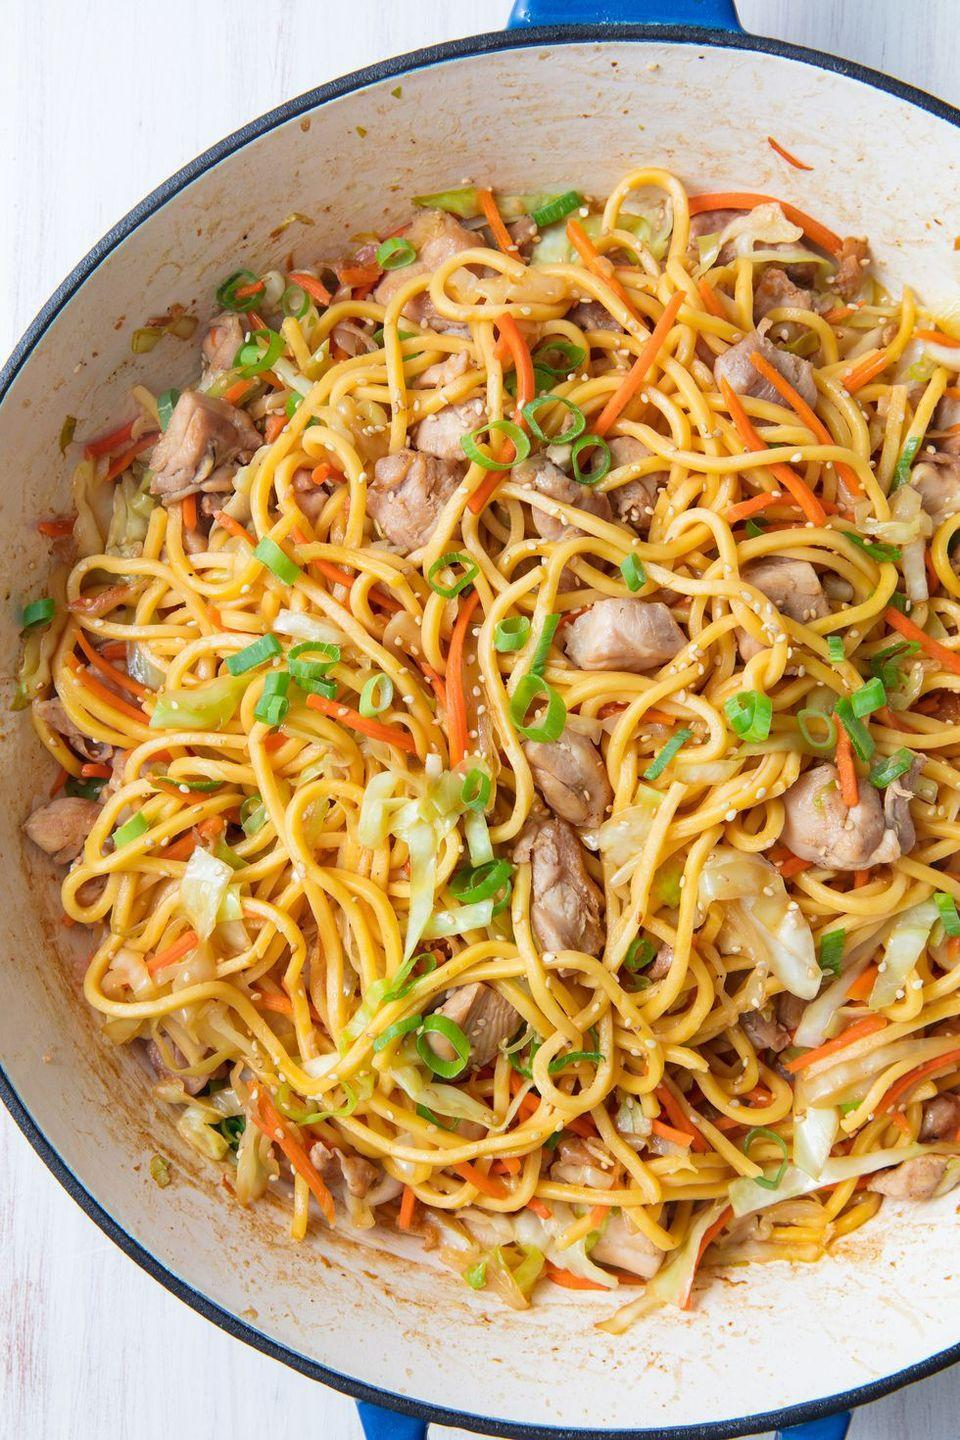 "<p>The perfect reason to keep a jar of oyster sauce in your fridge.</p><p>Get the recipe from <a href=""https://www.delish.com/cooking/recipe-ideas/a20266905/chicken-chow-mein-recipe/"" rel=""nofollow noopener"" target=""_blank"" data-ylk=""slk:Delish."" class=""link rapid-noclick-resp"">Delish.</a> </p>"